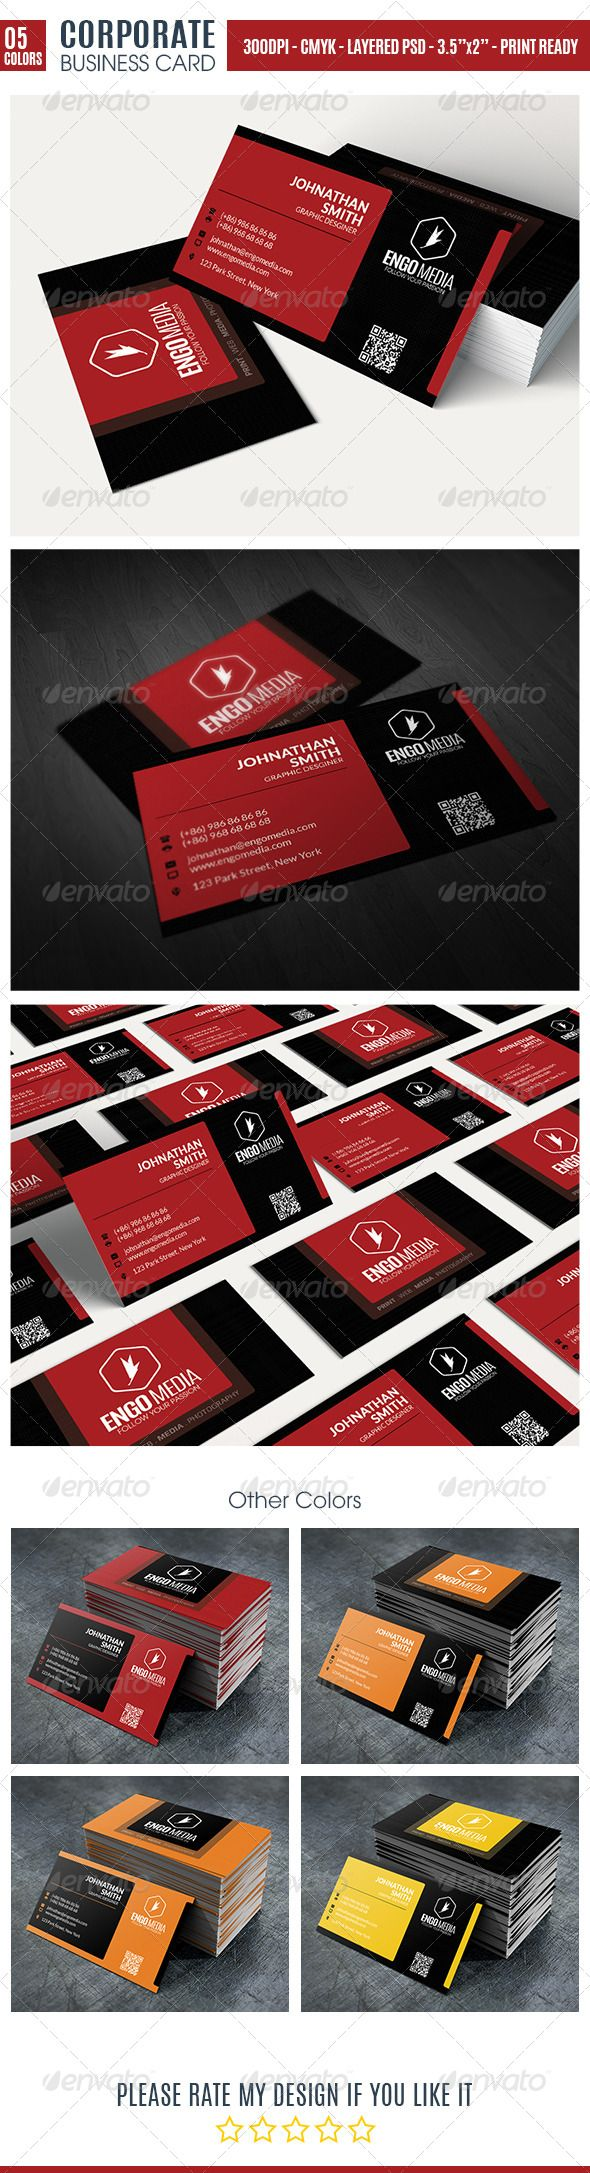 15 Best Business Cards Images On Pinterest Business Cards Carte